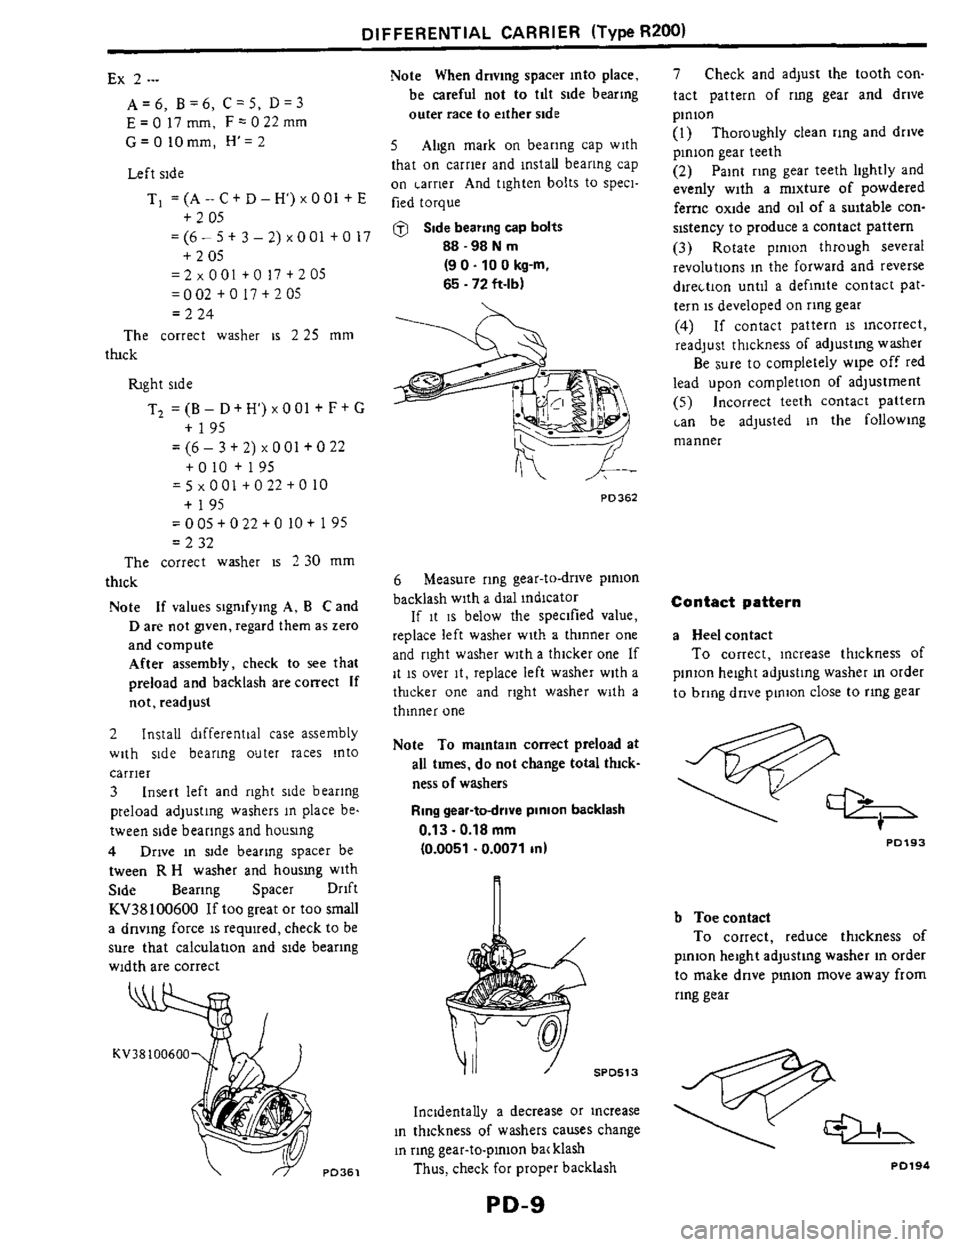 NISSAN 300ZX 1984 Z31 Propeller Shaft And Differential Carrier Workshop Manual, Page 9